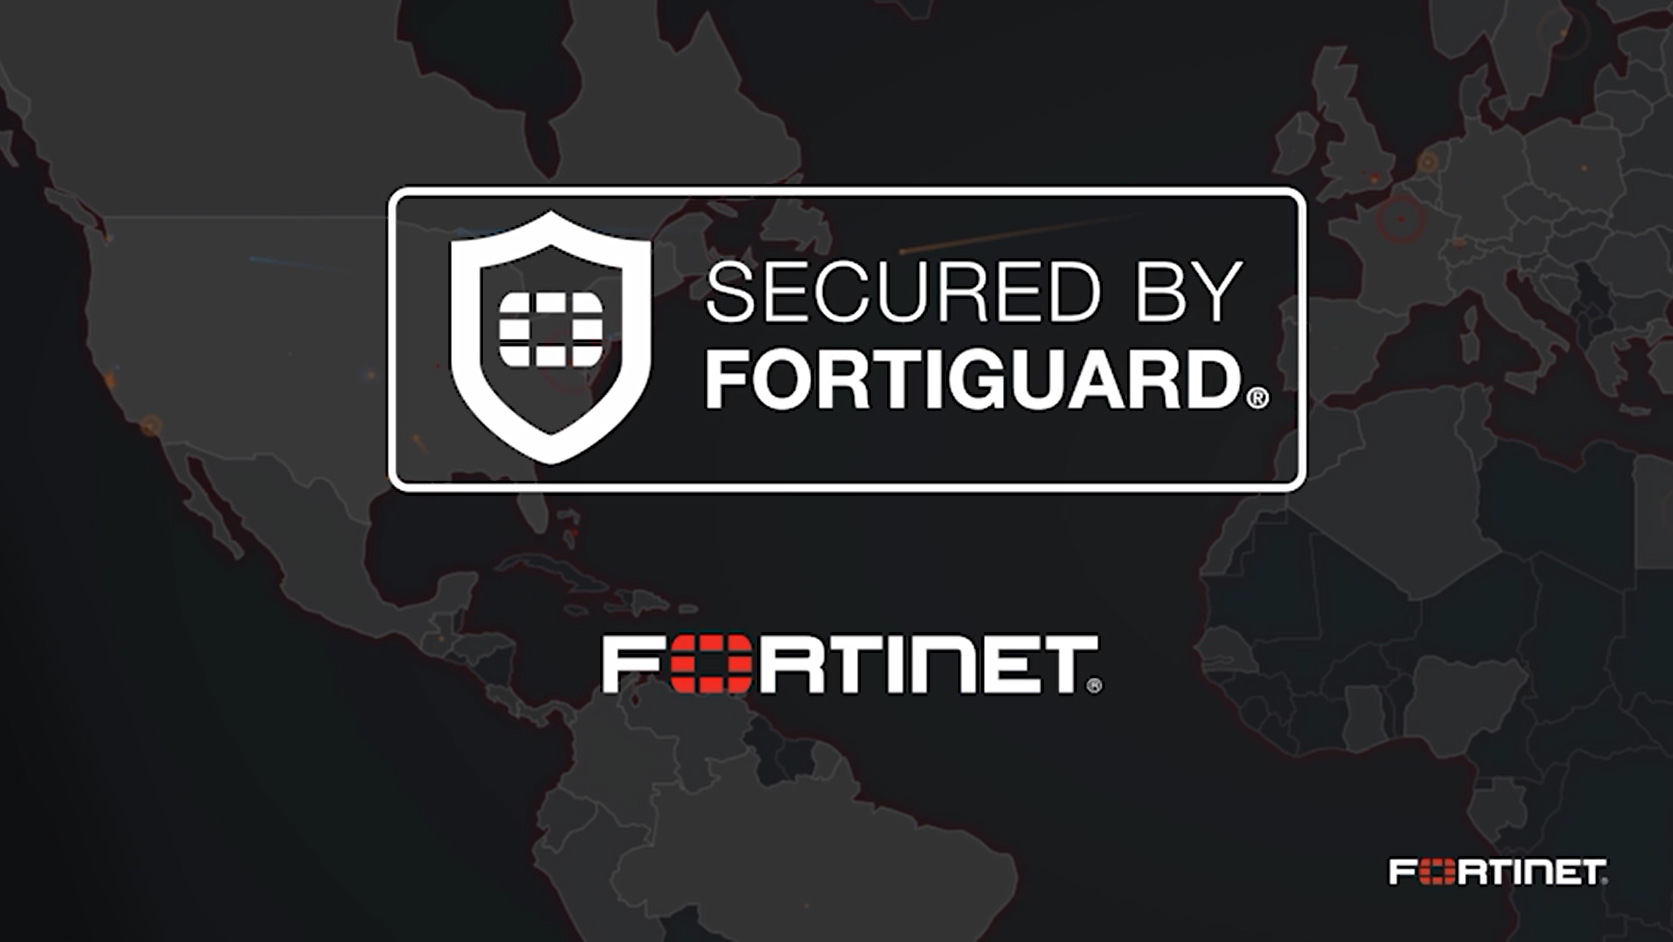 Secured by Fortiguard